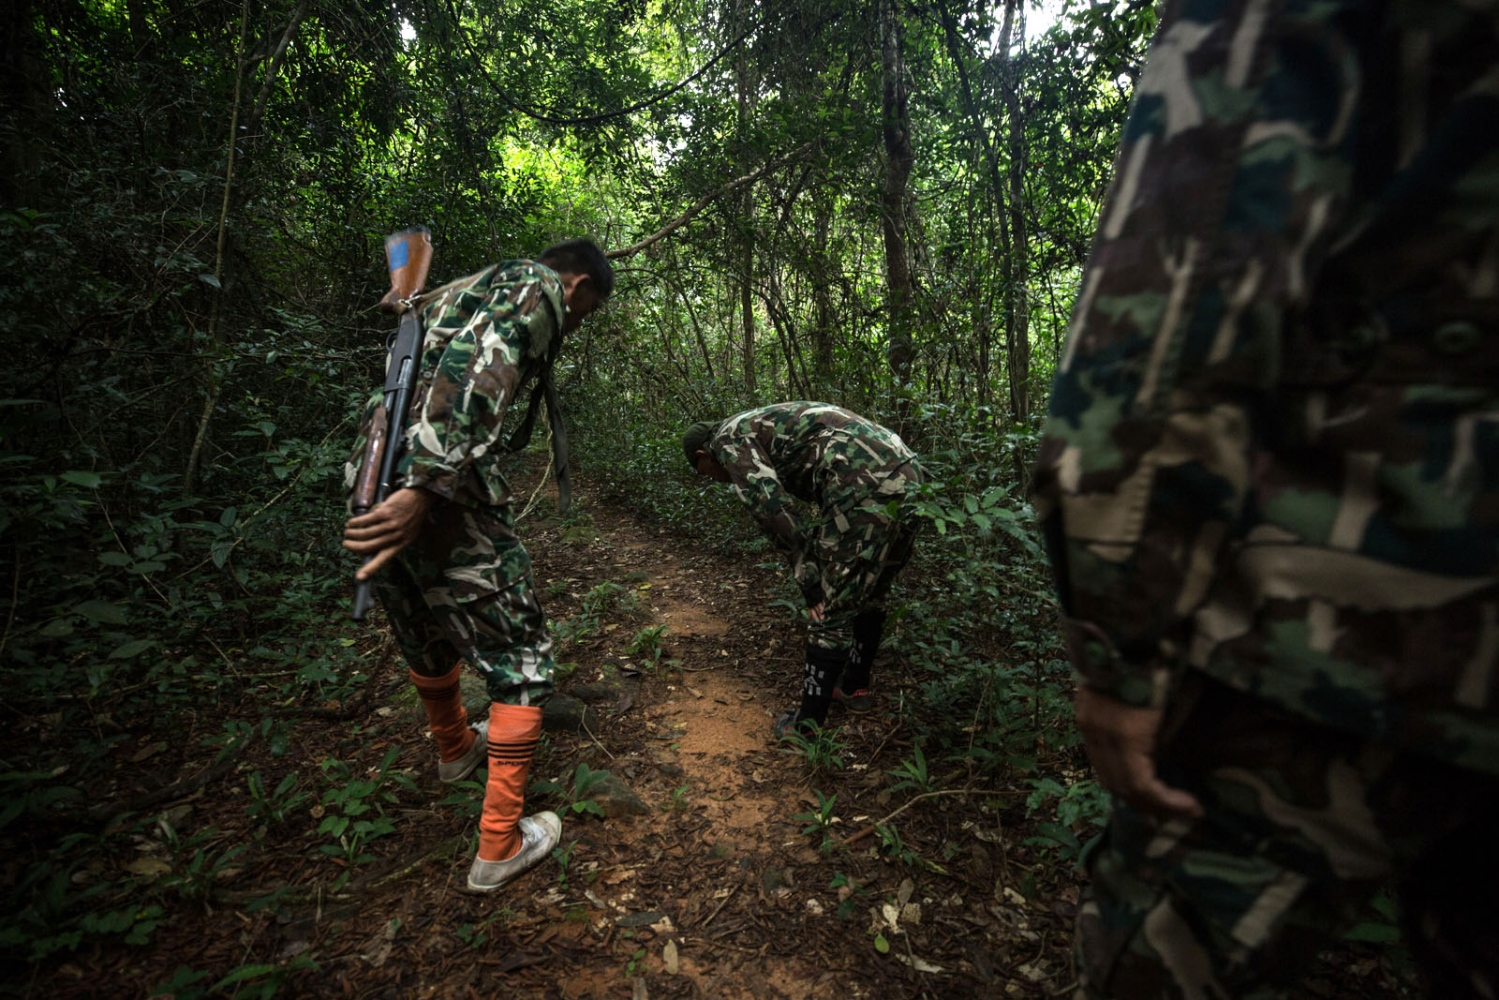 Thai forest rangers inspect a well known loggers path for footprints showing recent activity. Ta Praya National Park, Sa Kaew Province - September 2018